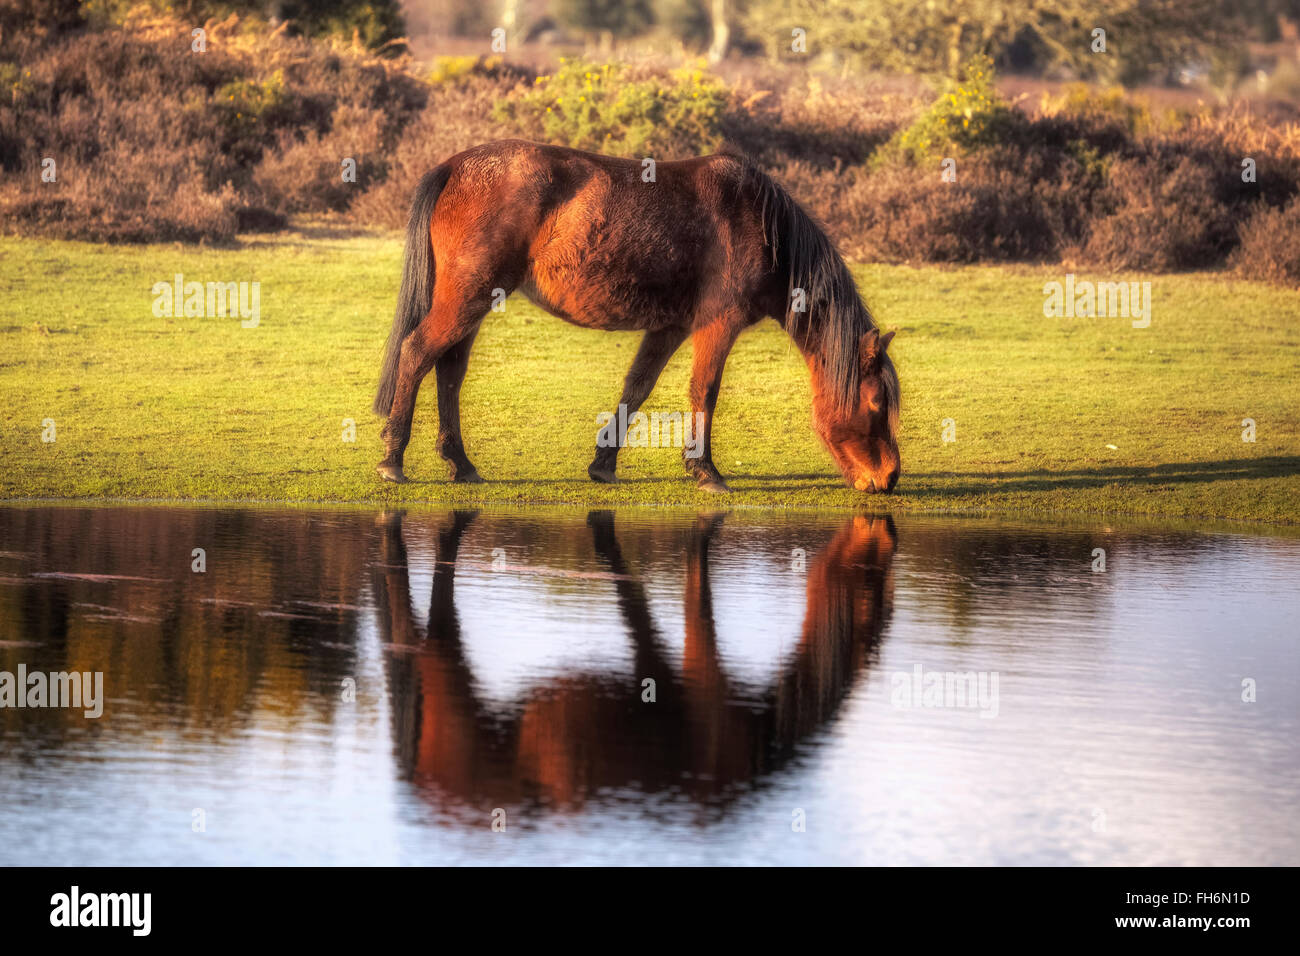 a wild New Forest pony drinking out of a pond near Lyndhurst, Hampshire, England, UK - Stock Image